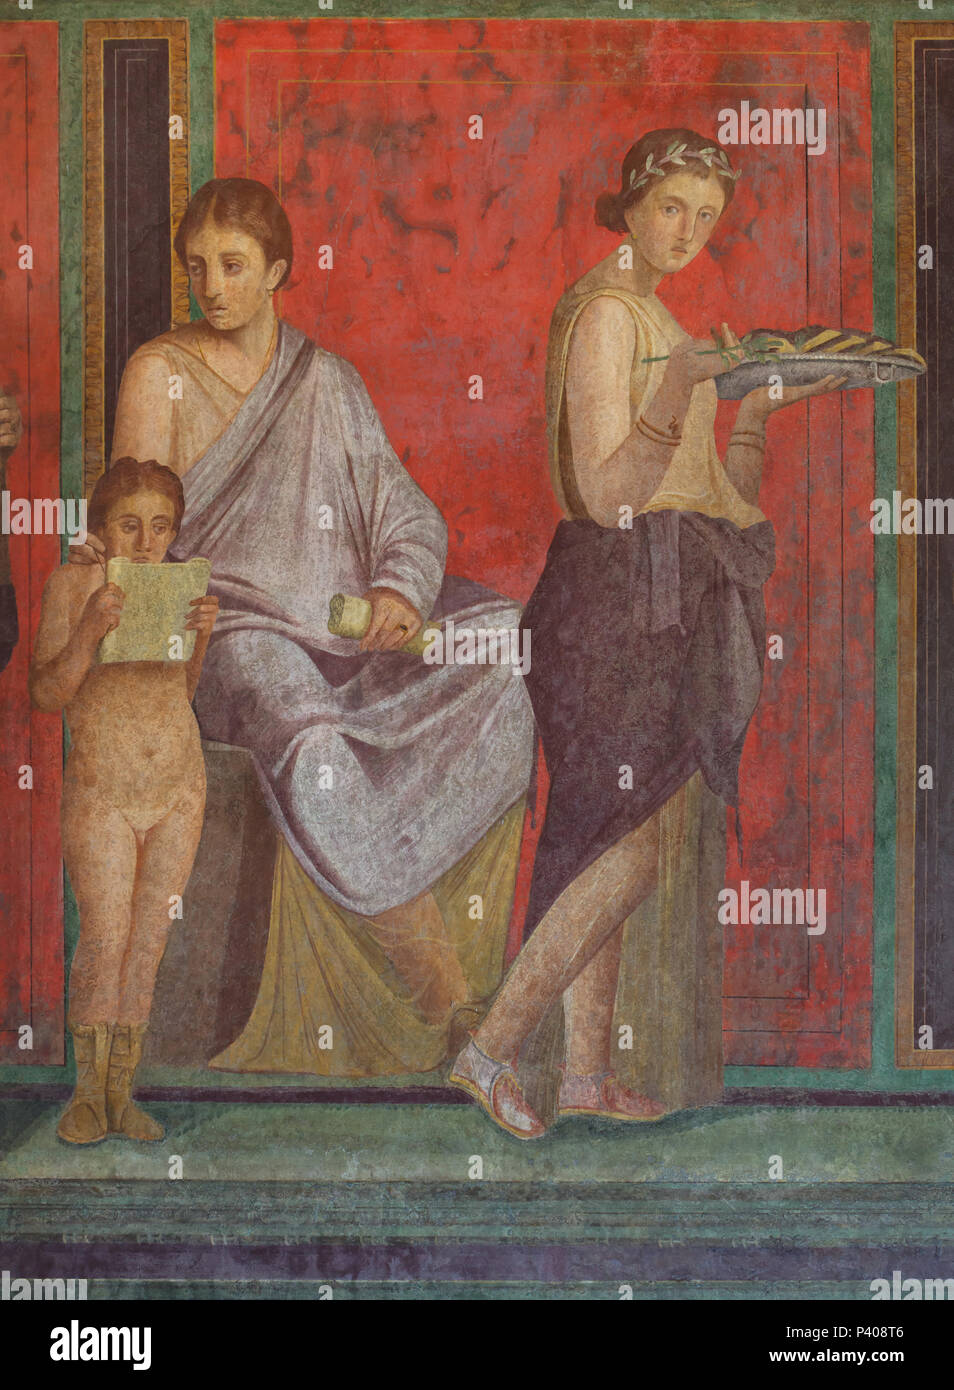 Dionysian Mysteries (Bacchian Mysteries) depicted in the Roman fresco in the triclinium (Roman dining room) in the Villa of the Mysteries (Villa dei Misteri) in the archaeological site of Pompeii (Pompei) near Naples, Campania, Italy. Initiation rite from the mysterious cult of Dionysus (Bacchus) is probably depicted in the murals. This fresco shows a priestess or matron seated on a throne, by which stands a small boy reading a scroll - presumably the declaration of the initiation. On the other side of the throne the young initiate is shown in a purple robe and myrtle crown, holding a sprig of Stock Photo